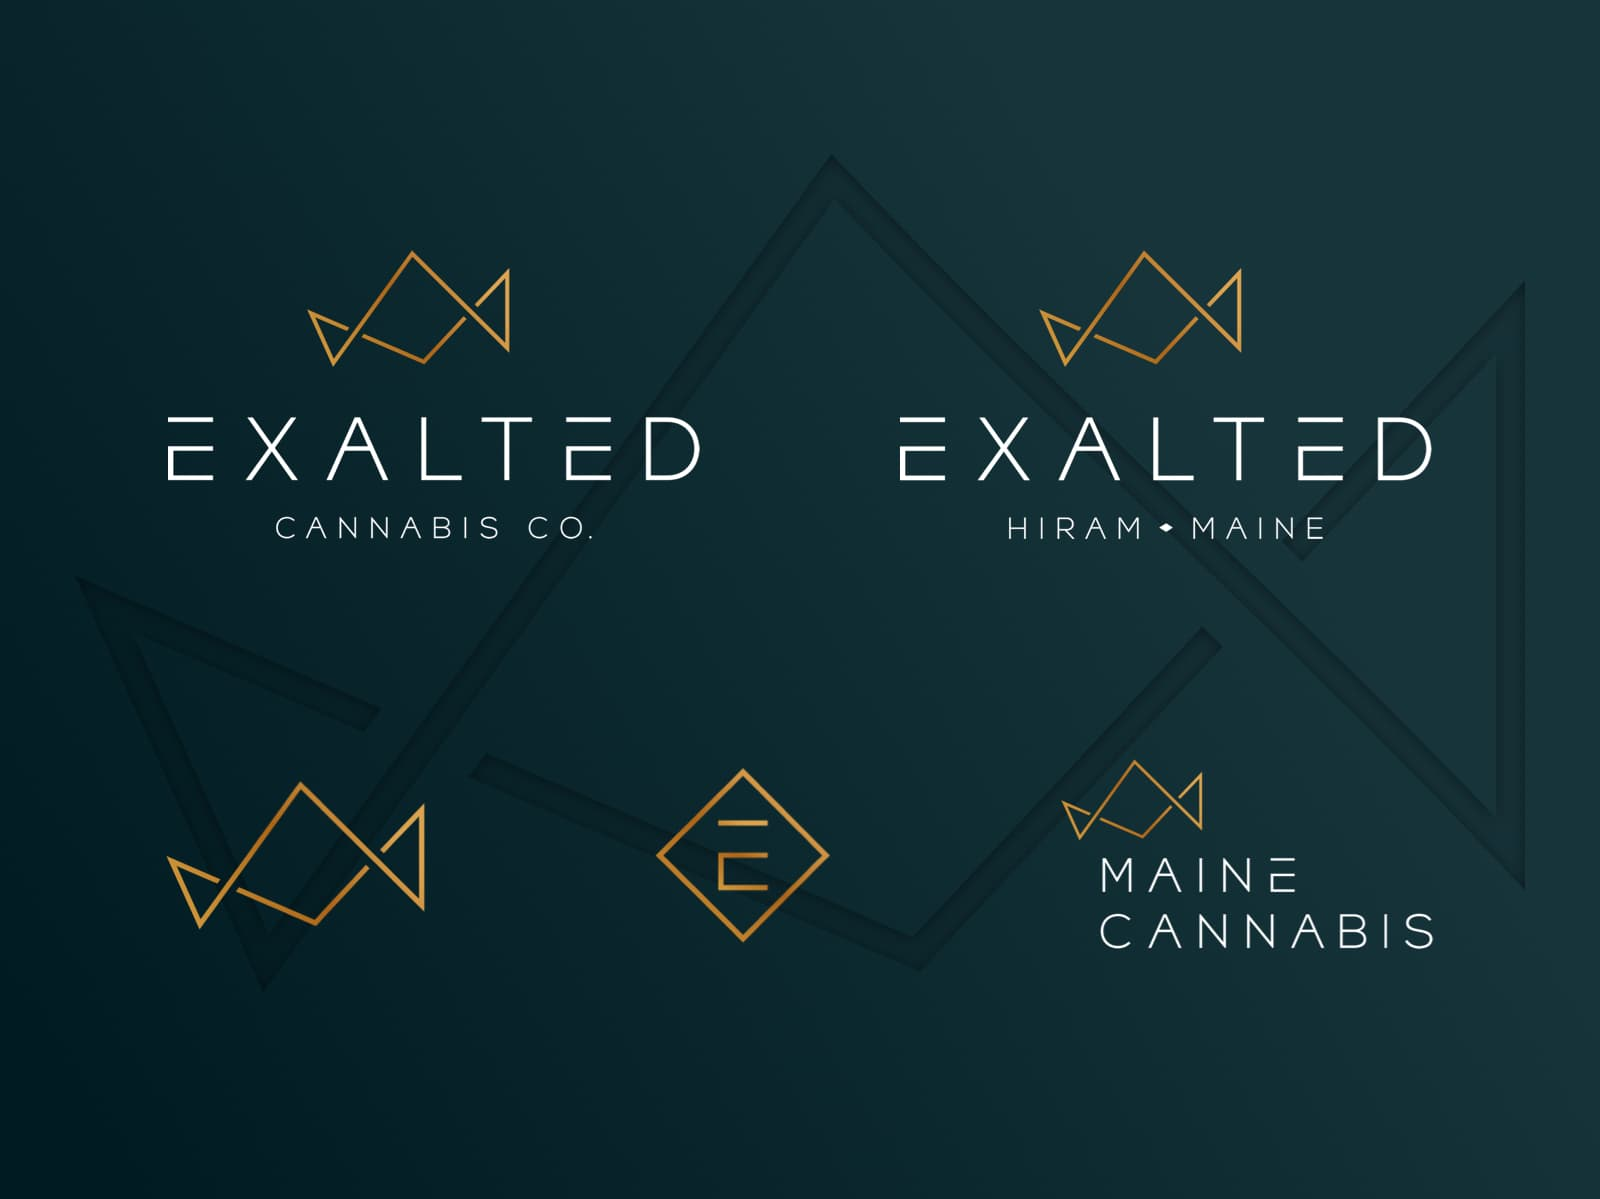 Exalted logo suite including the main logo that reads Exalted Cannabis Co., secondary logo that reads Exalted Hiram Maine, and three different logo marks